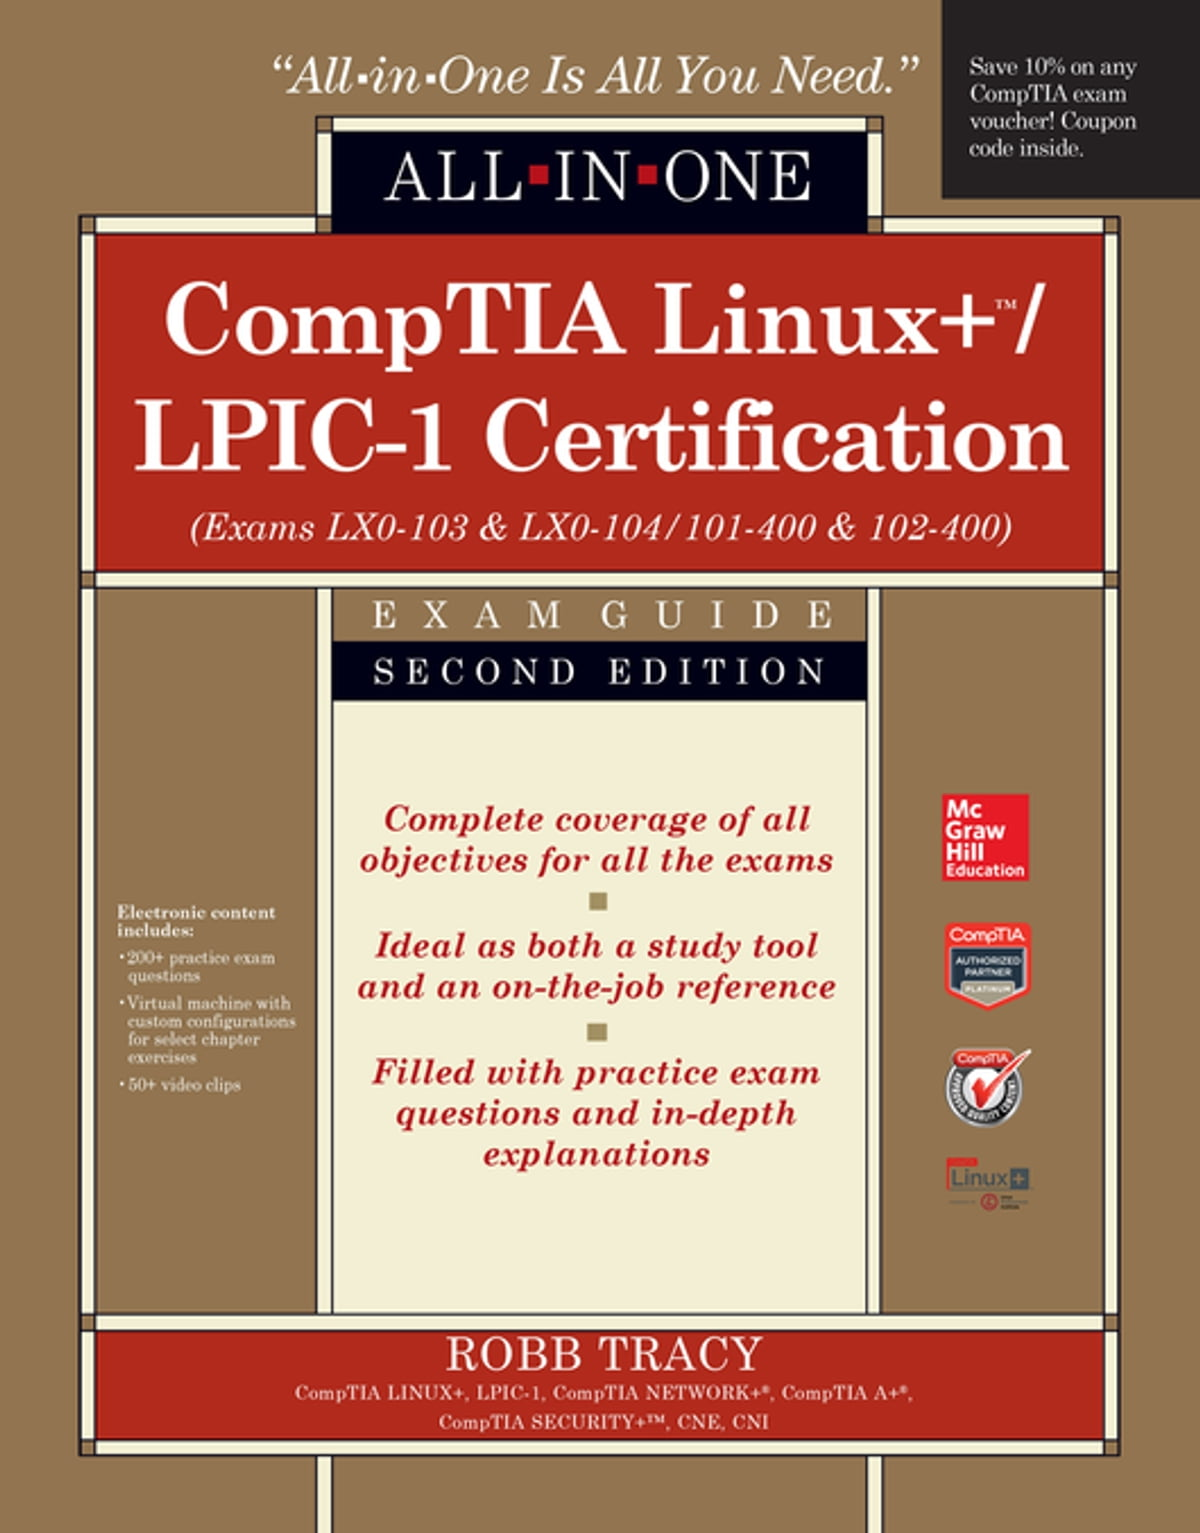 Comptia linuxlpic 1 certification all in one exam guide second comptia linuxlpic 1 certification all in one exam guide second edition exams lx0 103 lx0 104101 400 102 400 ebook by robb h tracy 9780071841719 fandeluxe Gallery